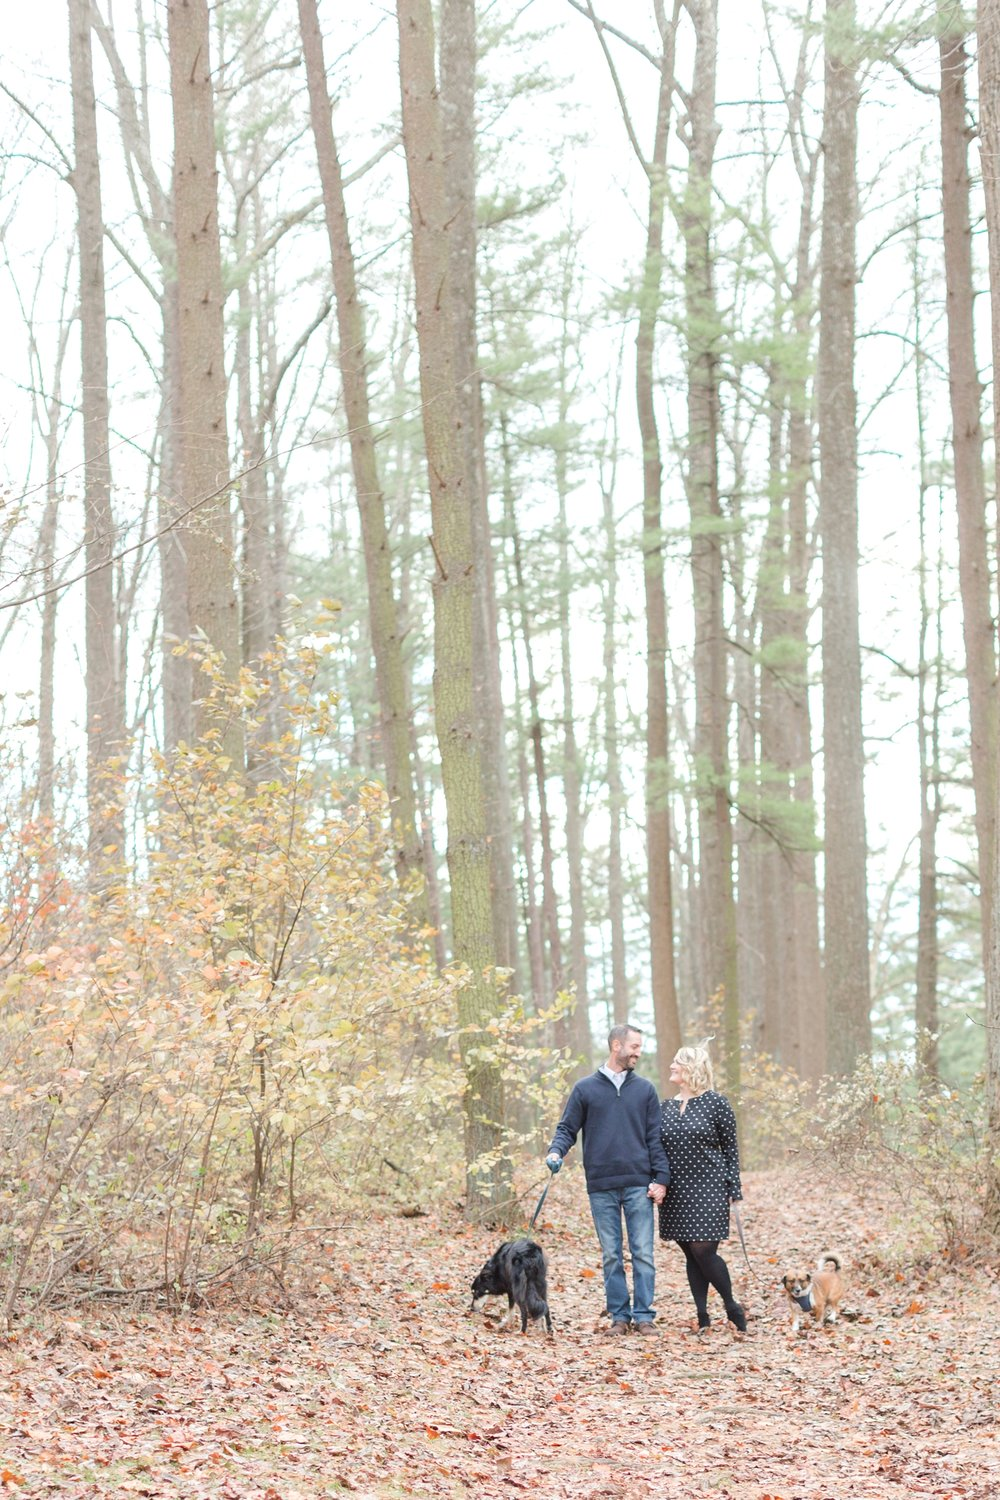 Emily Kordish & John Winkler Engagement-5_loch-raven-reservoir-baltimore-maryland-engagement-photography-anna-grace-photography-photo.jpg